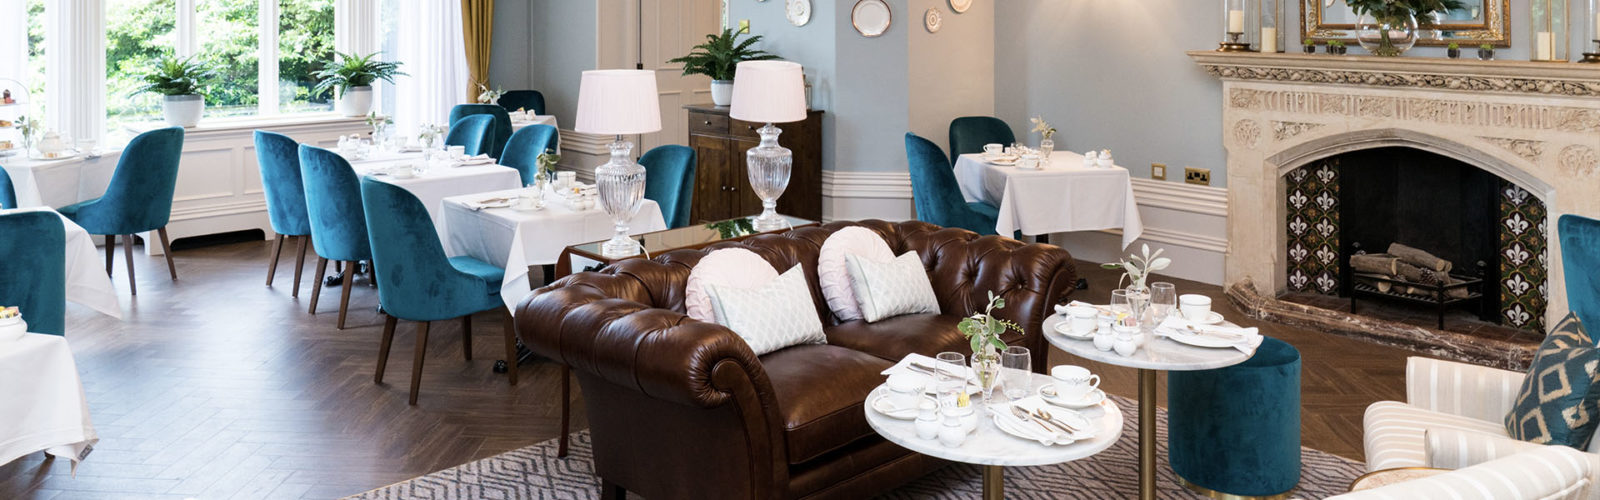 Laura Ashley The Tea Room at Kenwood Hall Vine Hotel Management